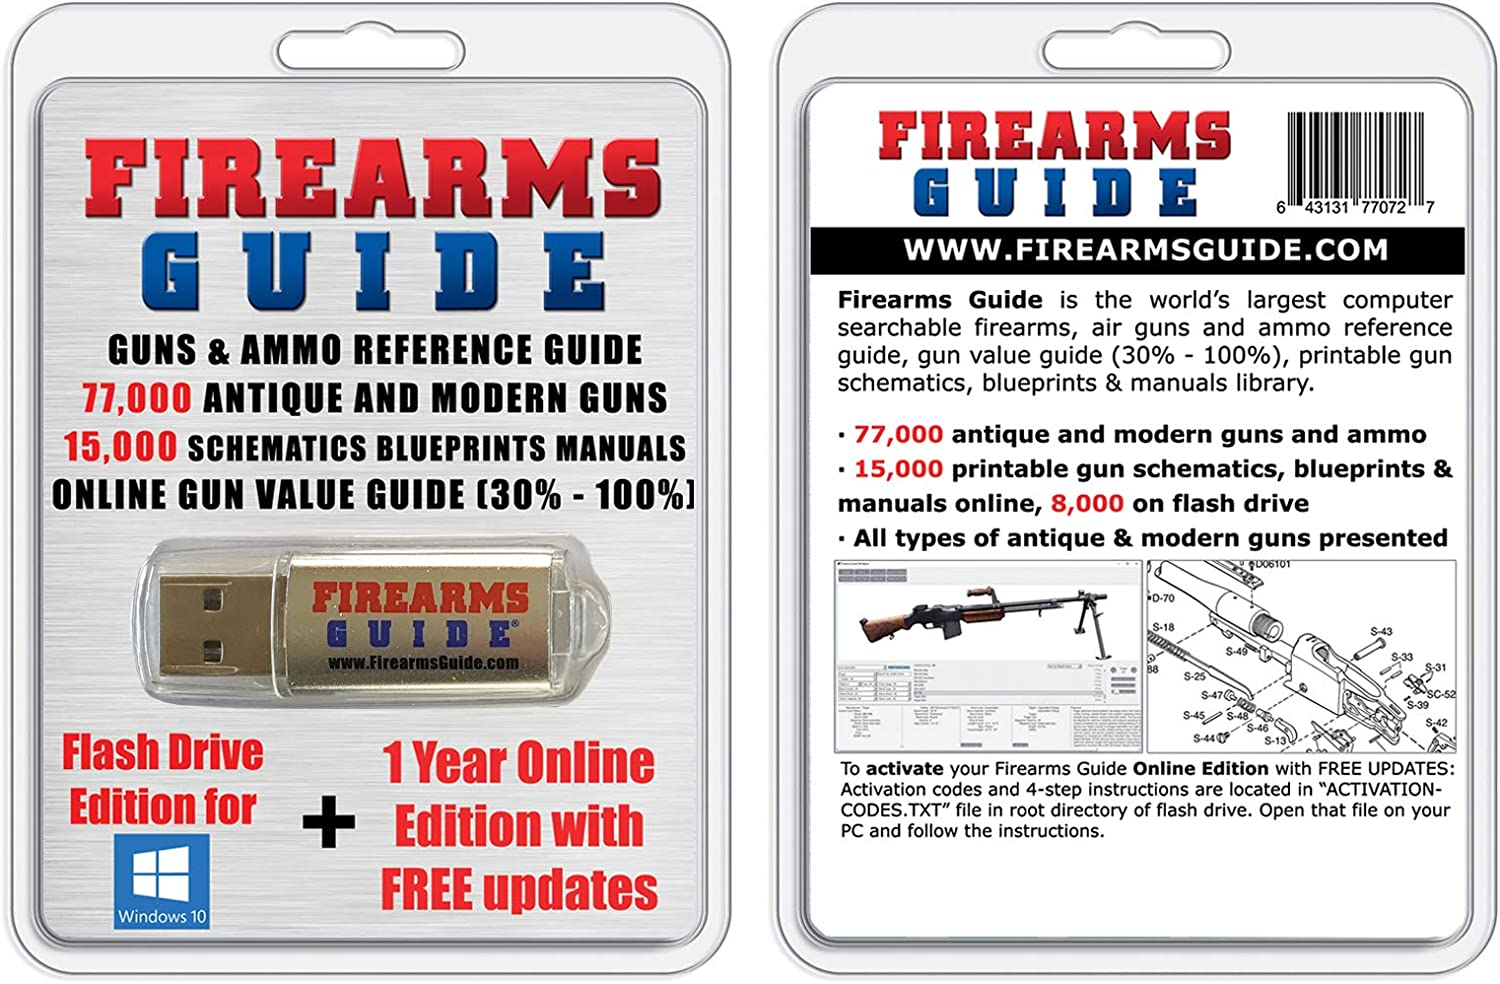 Firearms Guide 11th Edition - Guns Reference Guide & Gun Values & 17,000 Manuals, Schematics, Blueprints